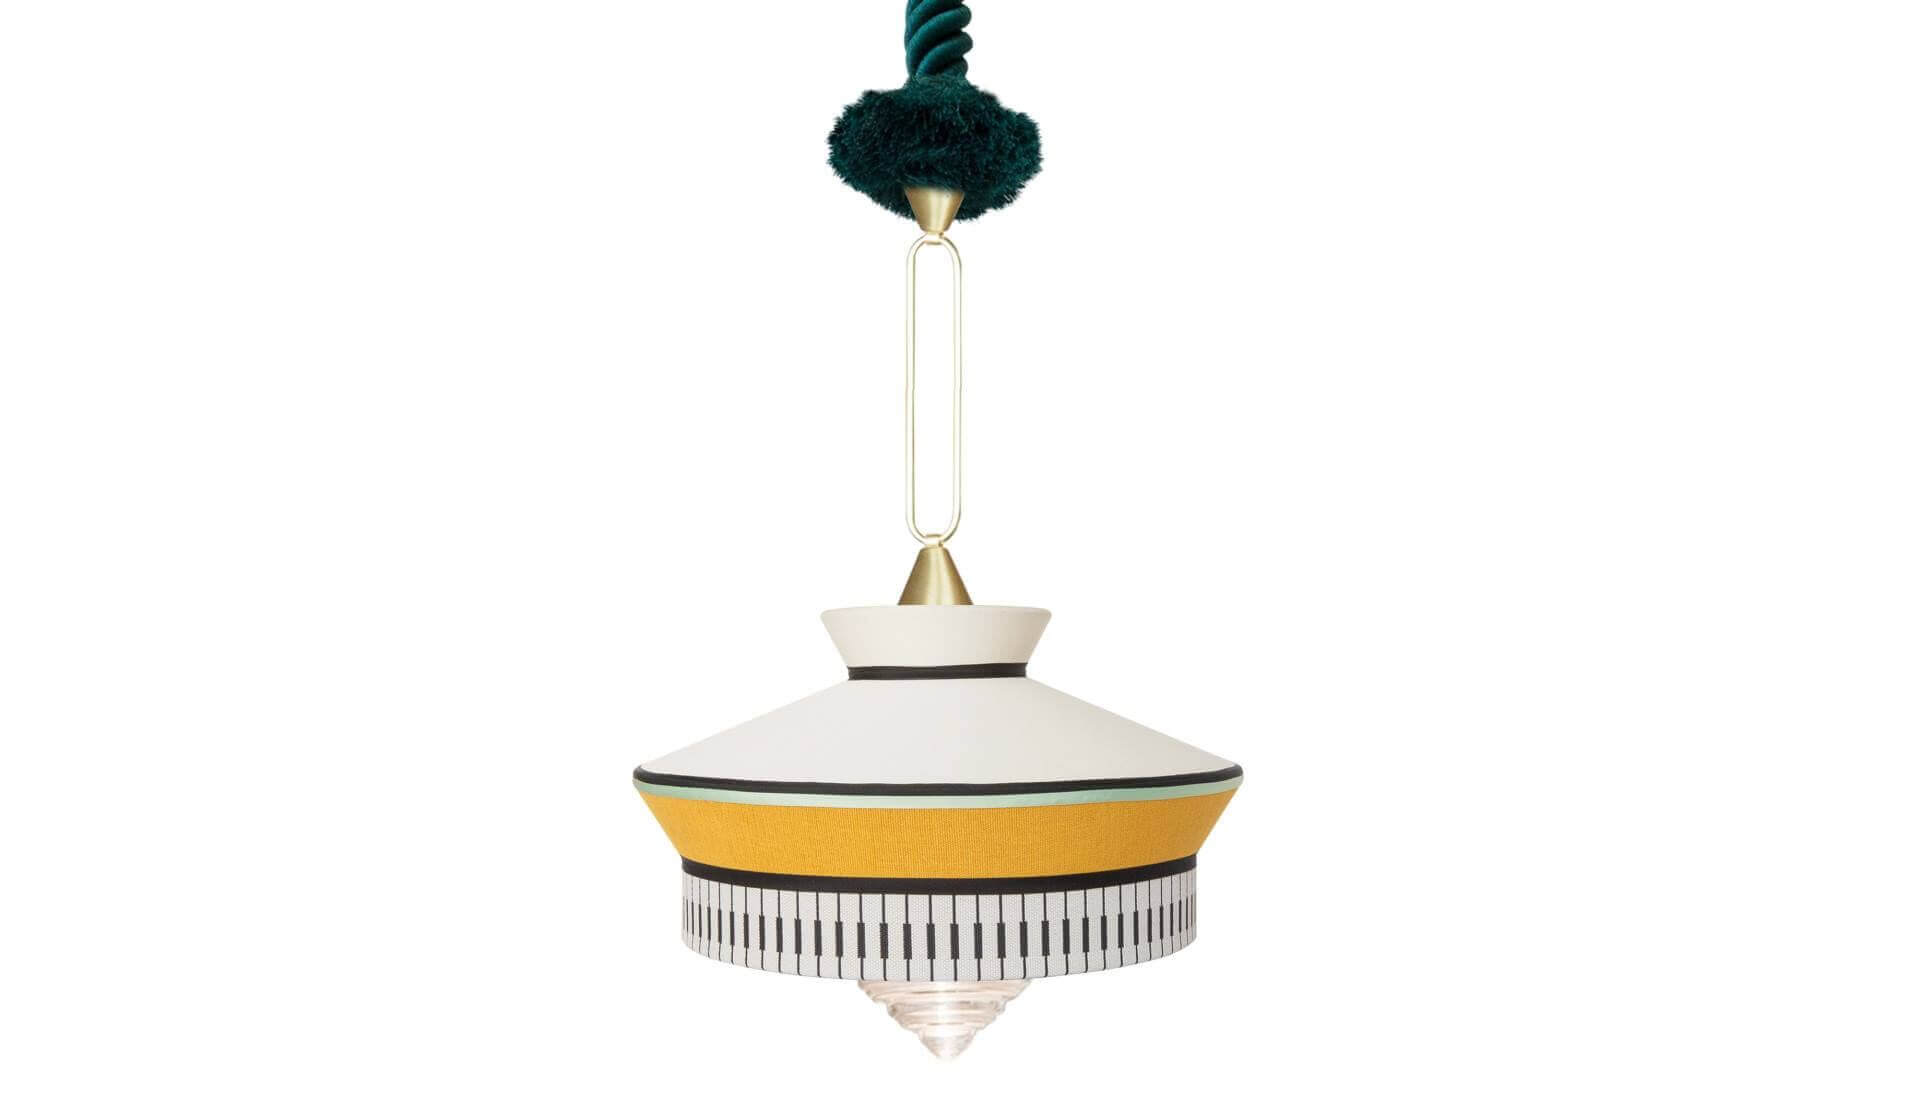 Contardi Calypso Martinique Pendant Light